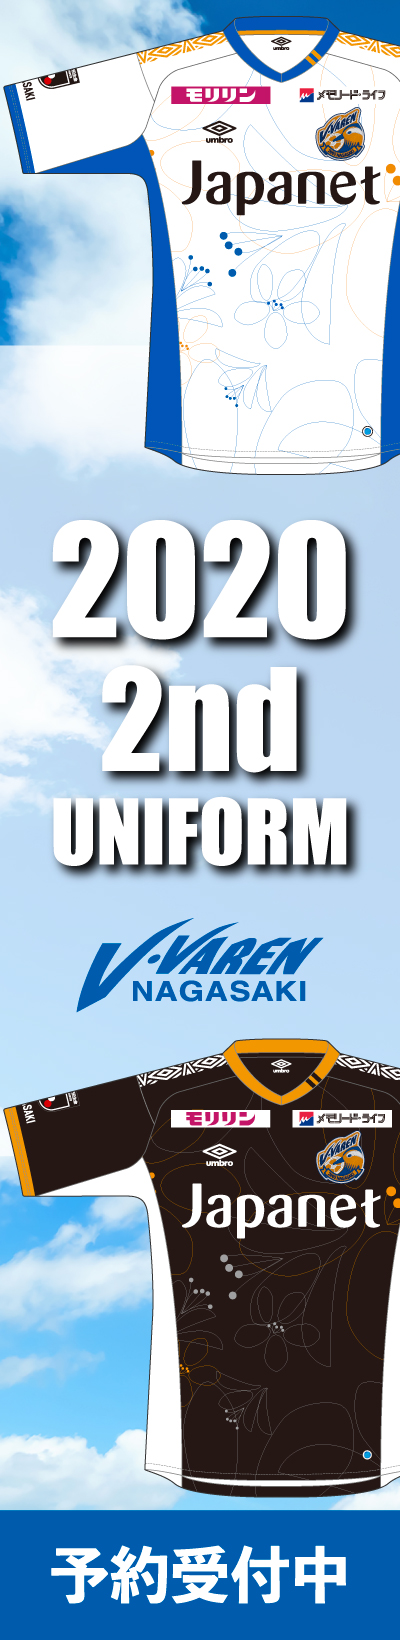 https://www.v-varen.com/uniform2020/